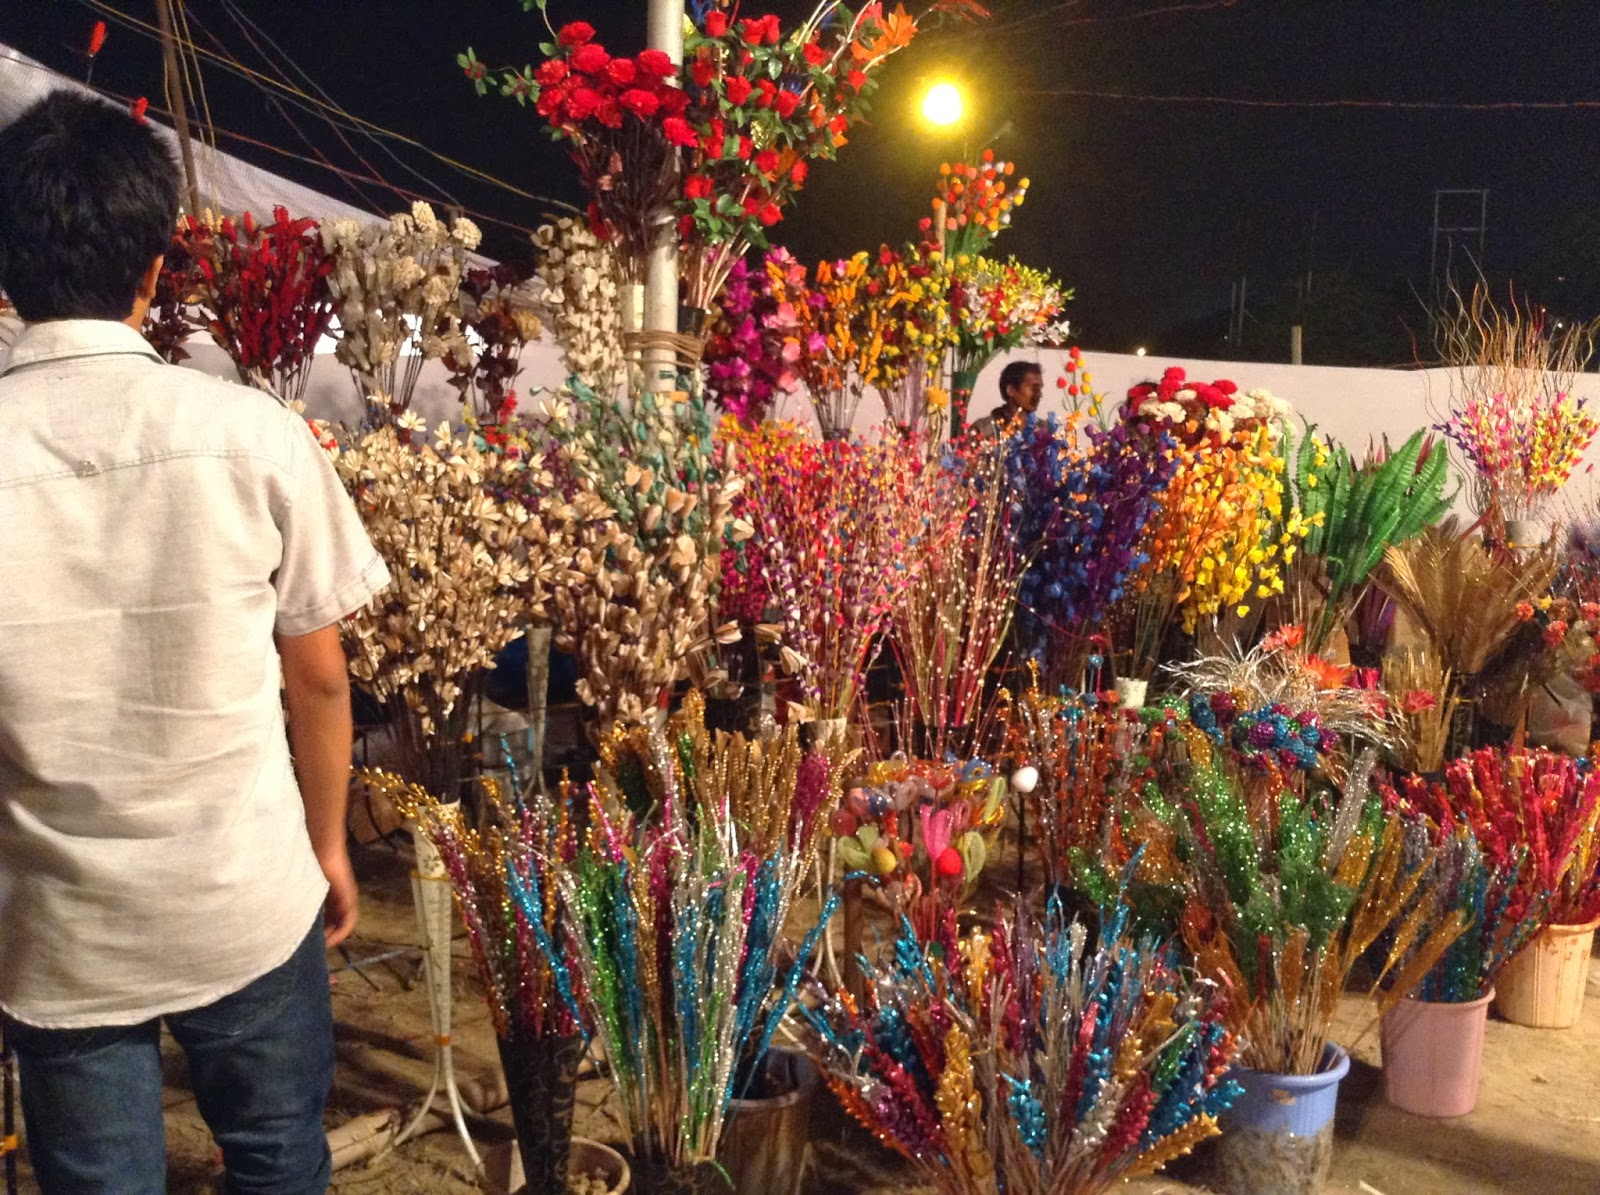 Decorative Flower Stall at Deep Utsav 2013, Noida